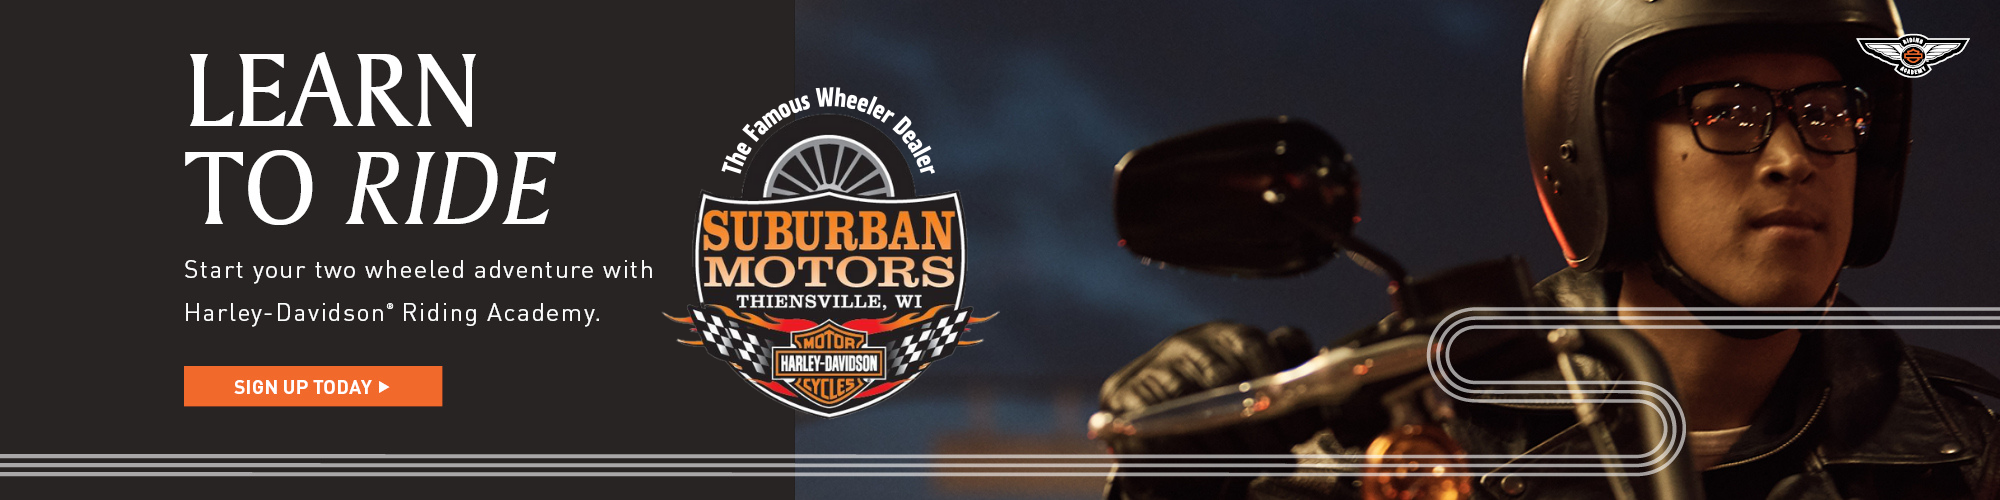 Learn To Ride At Suburban Motors Harley-Davidson